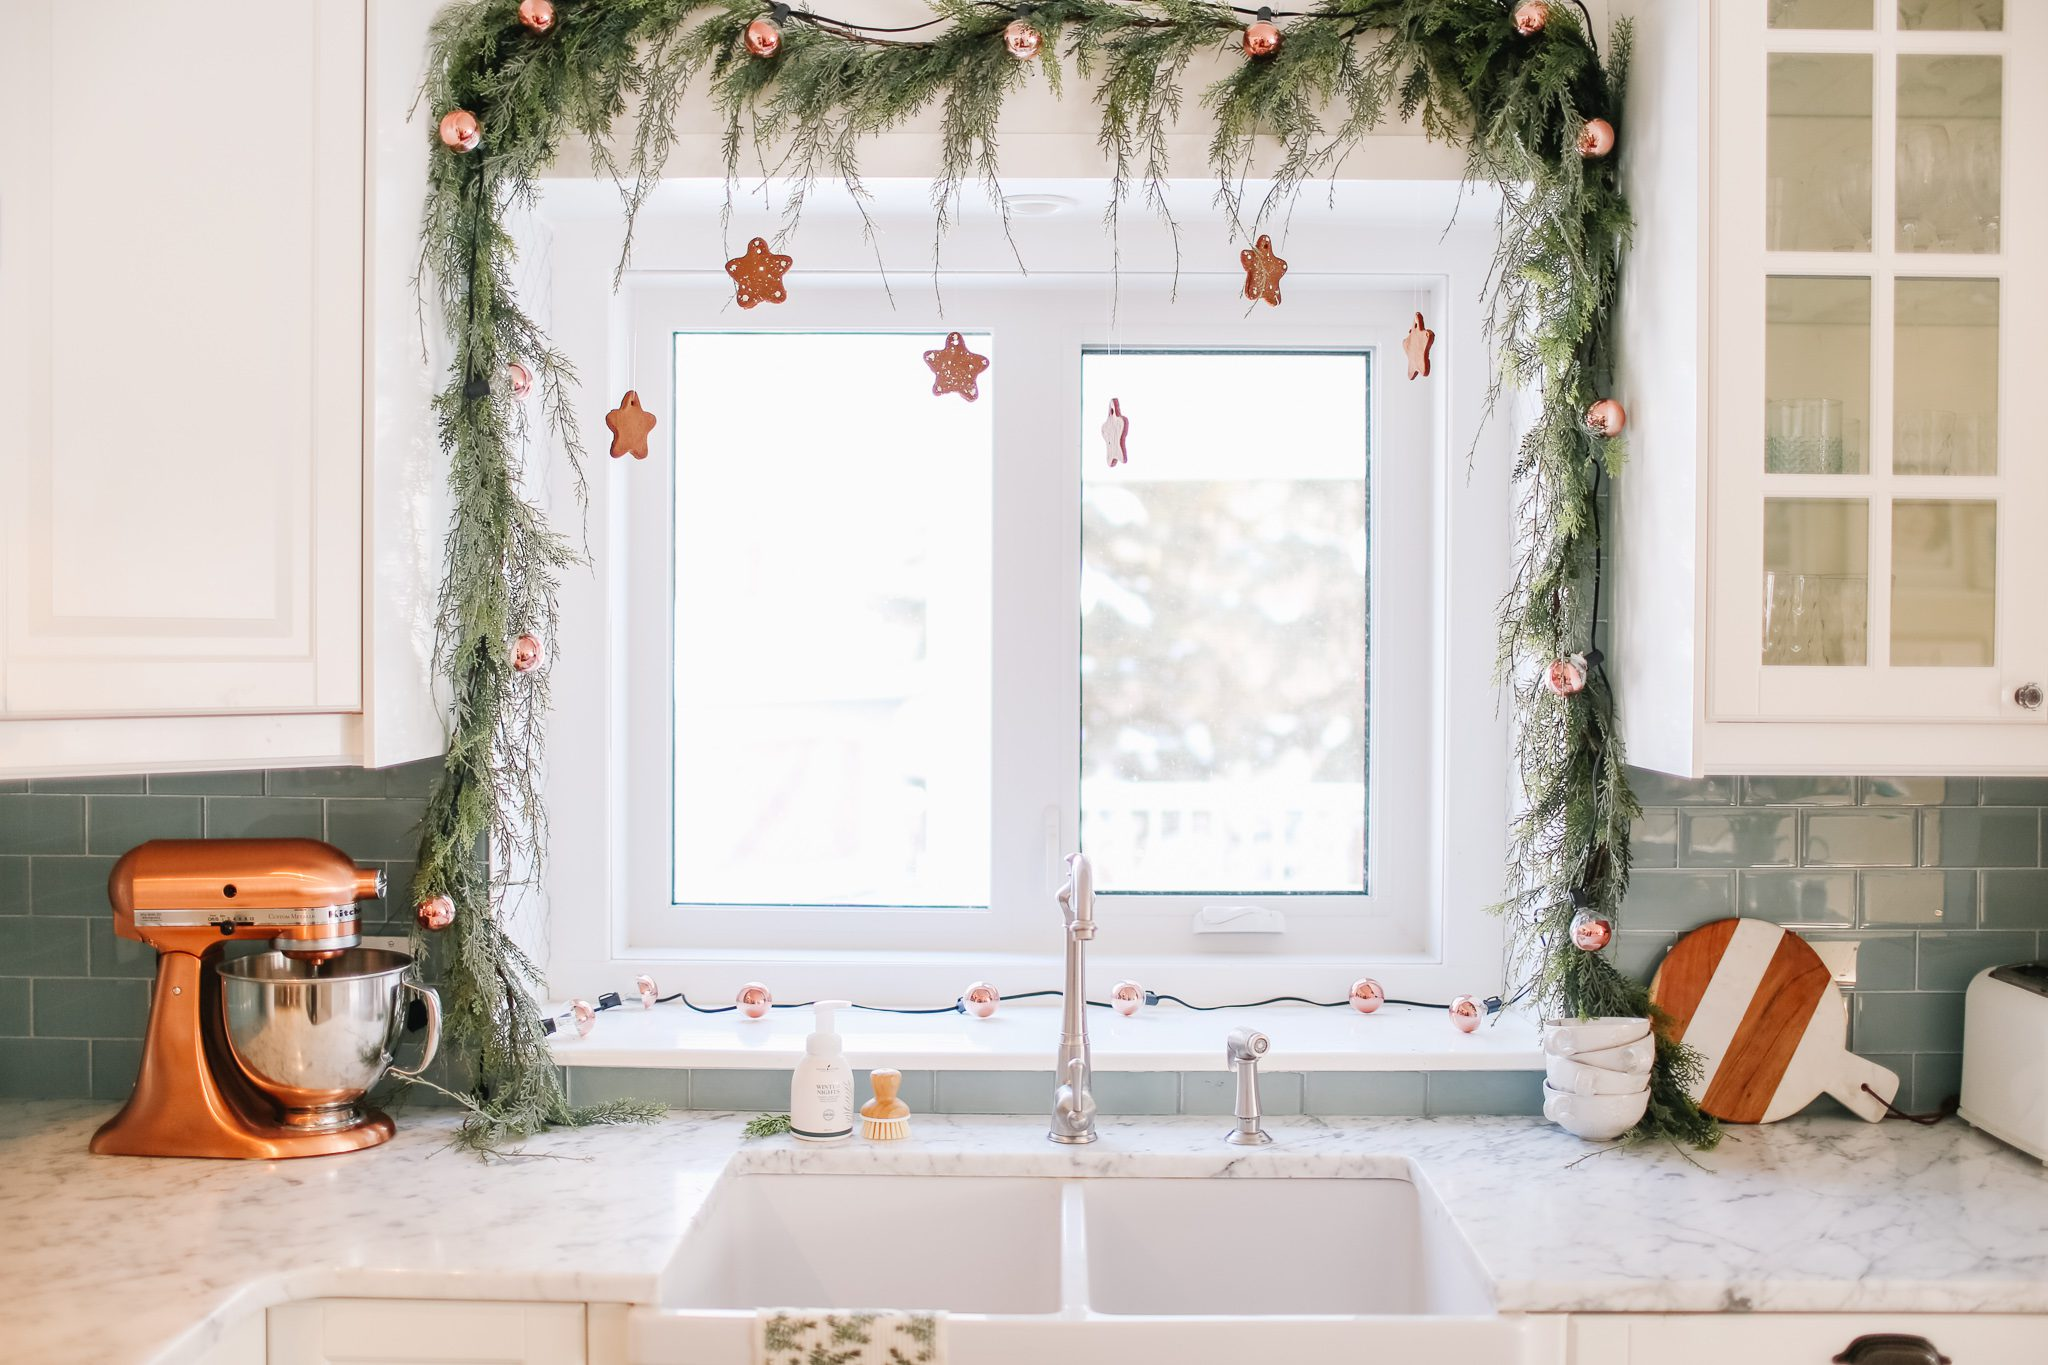 kitchen window decorated with Christmas garland and gingerbread cookies shaped like stars